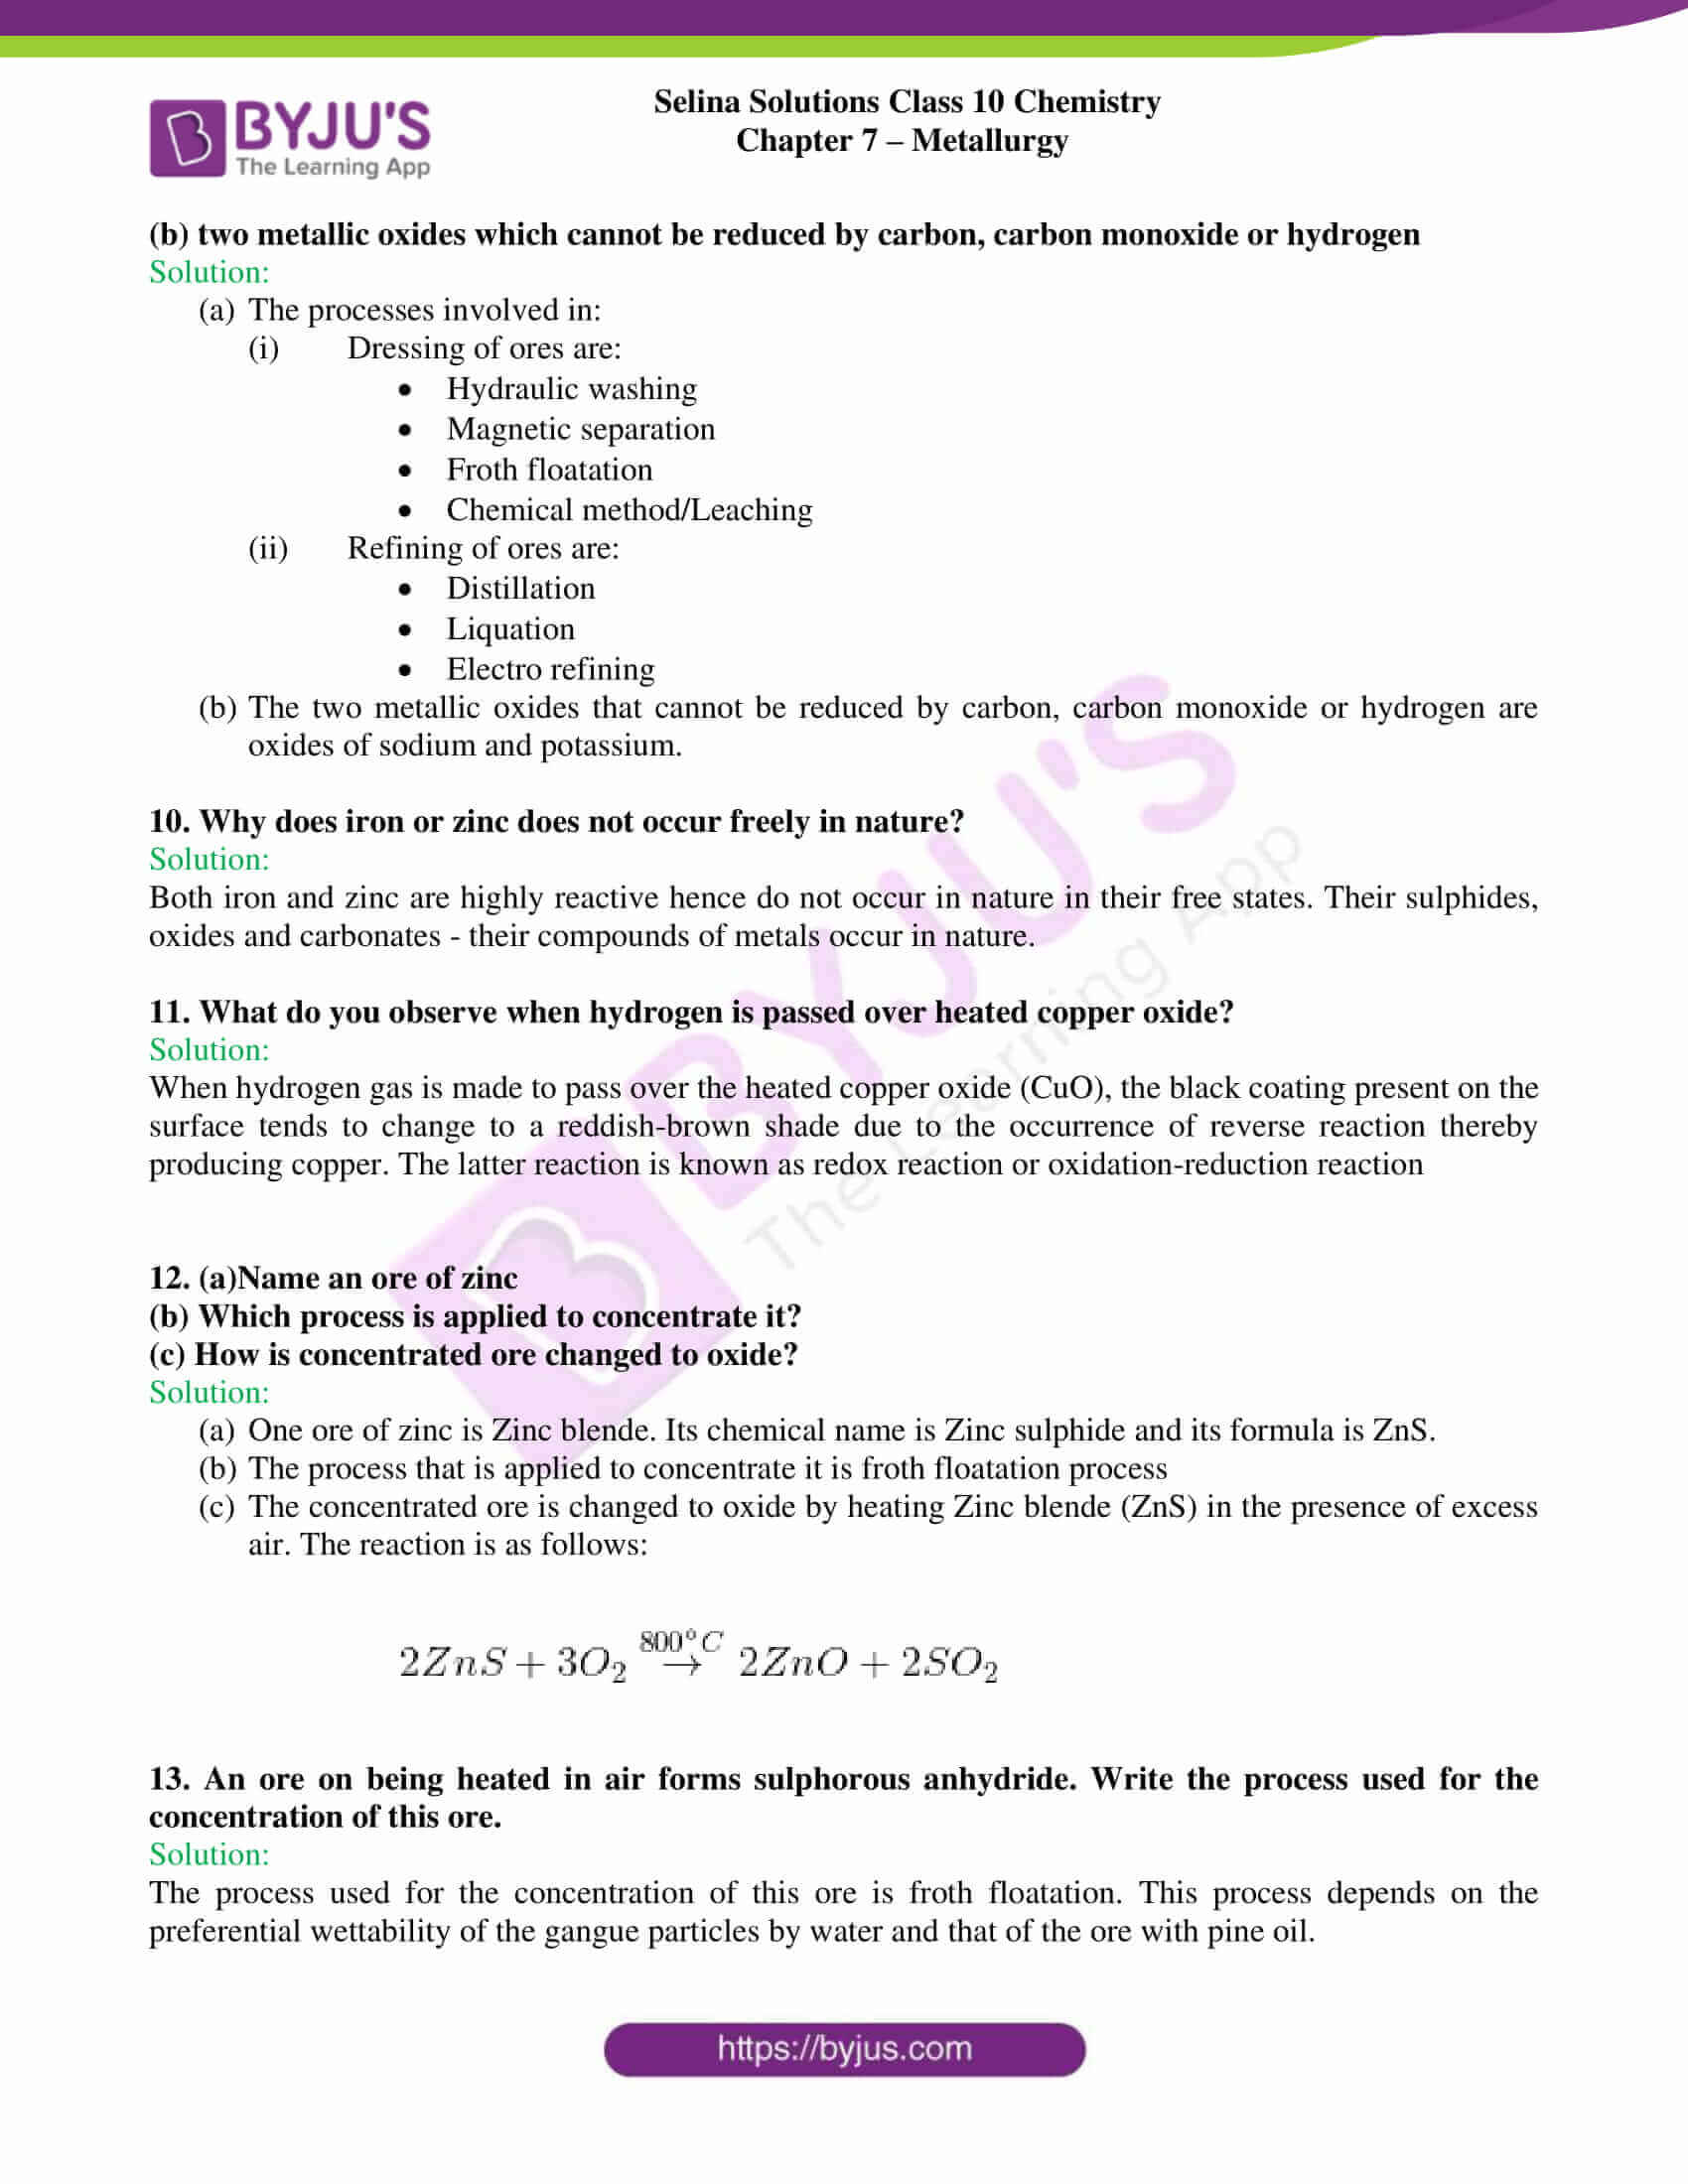 selina sol concise chem class 10 ch 7 3